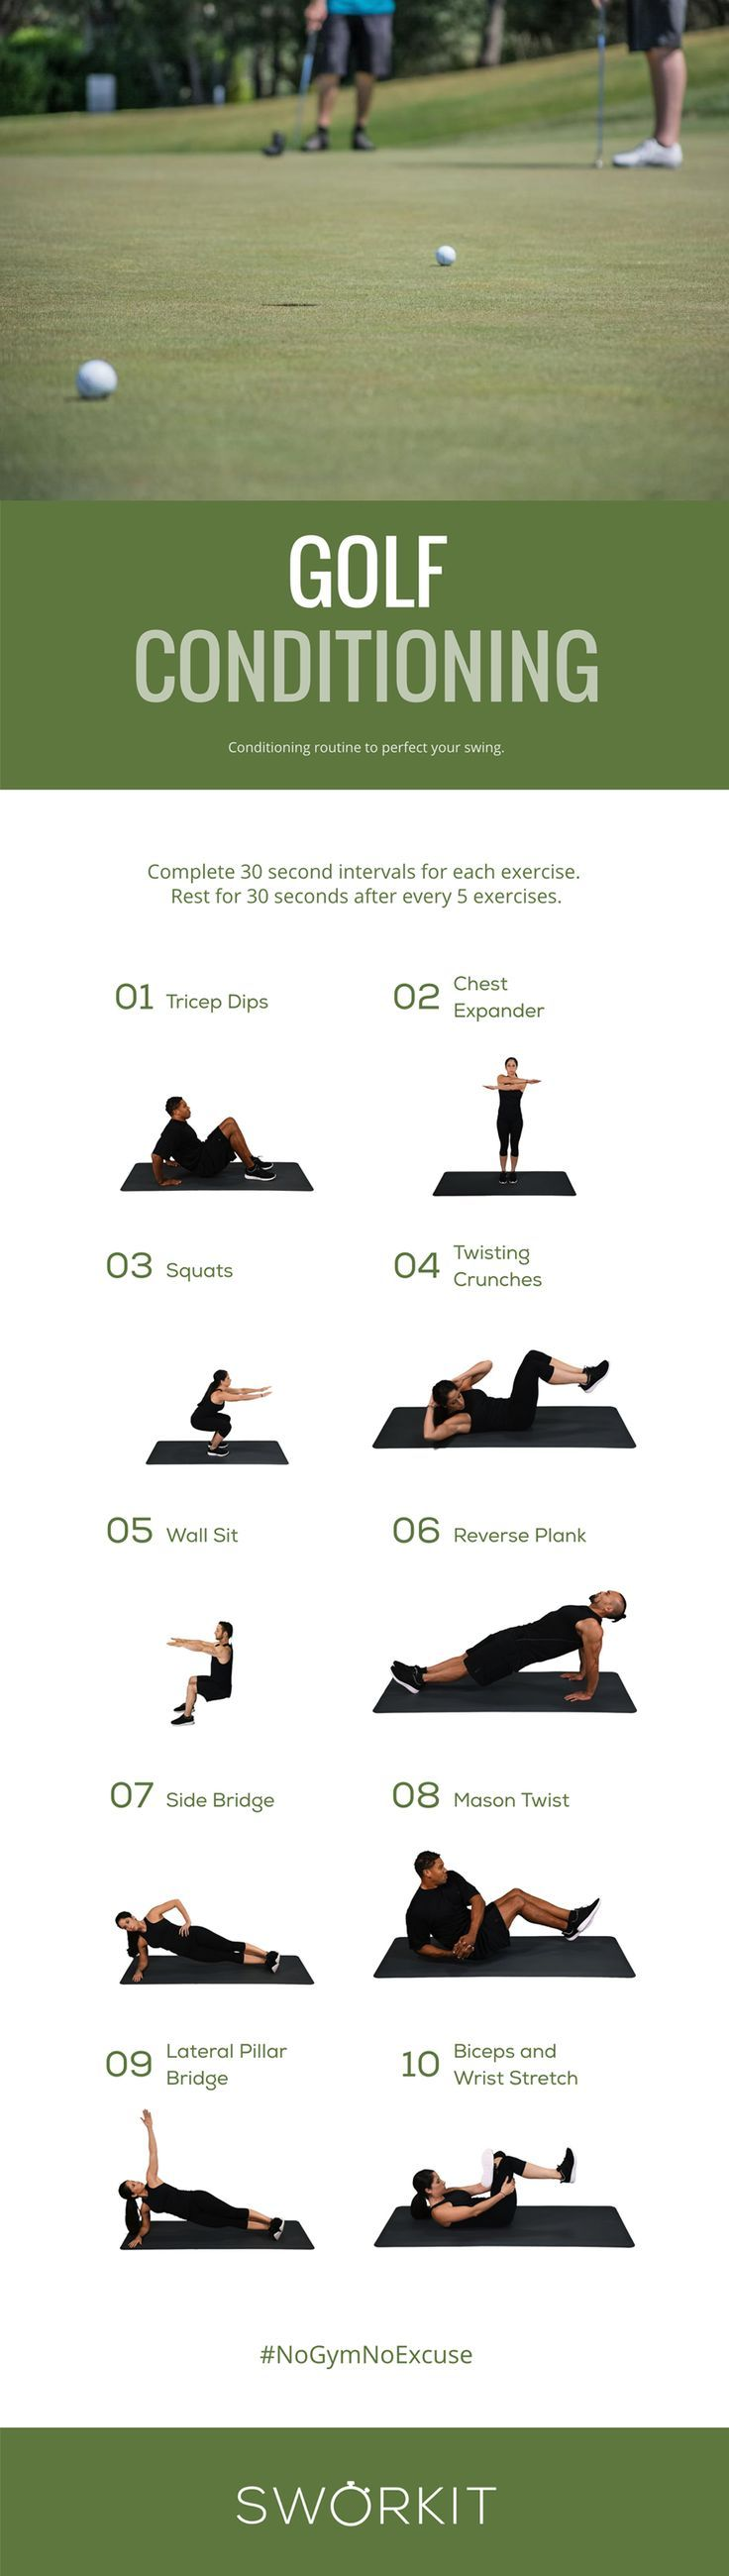 recipe: gym exercises for golfers [21]